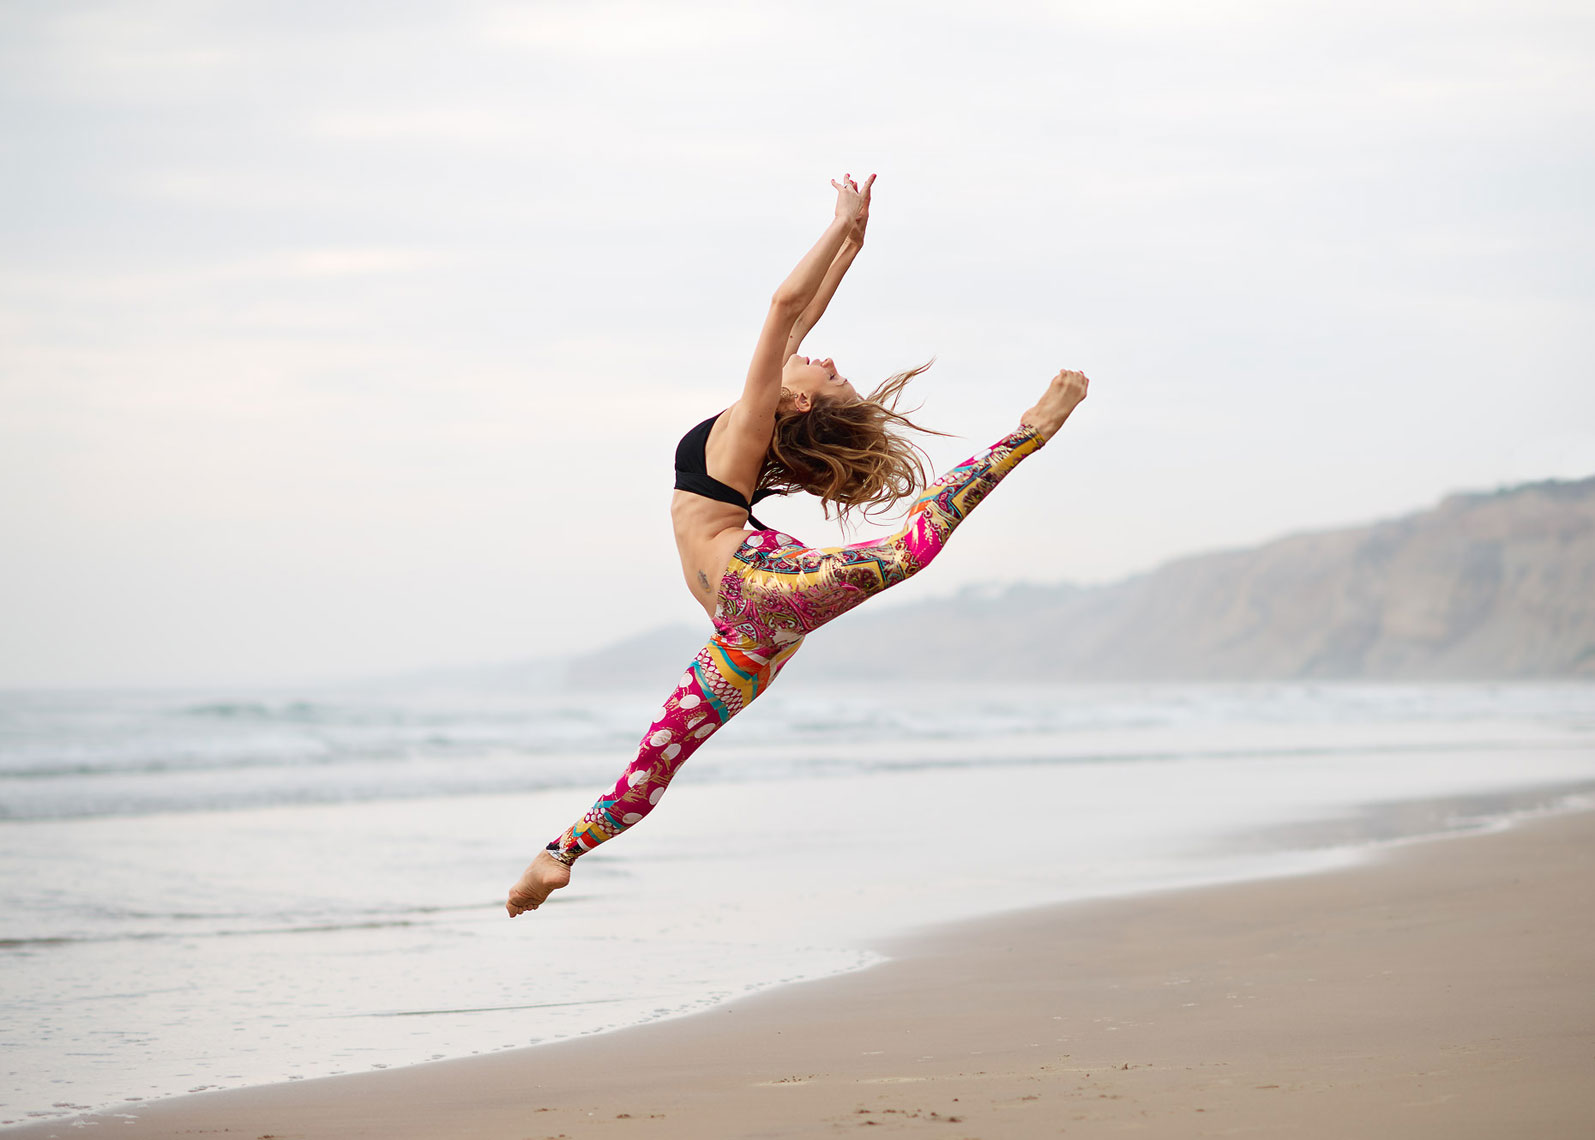 Ballerina jumping on beach in La Jolla Shores.